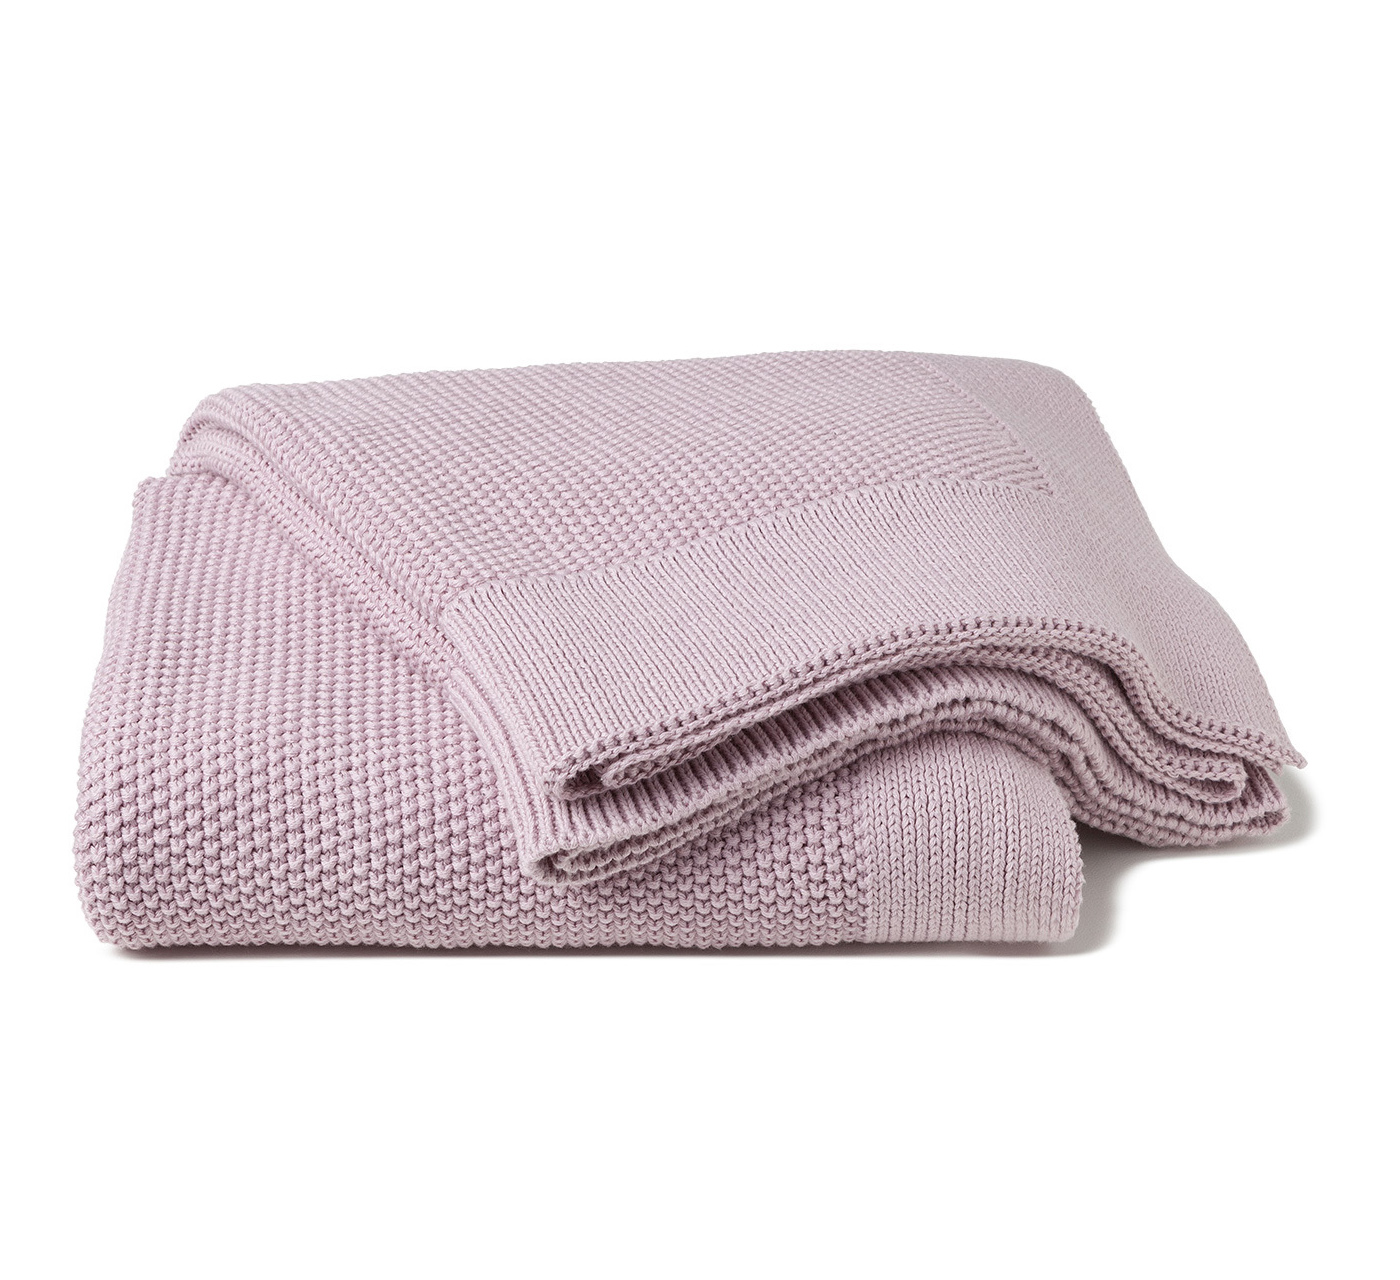 newluxury_cotton_throw_c__58869.1482364919.1280.1280.jpg